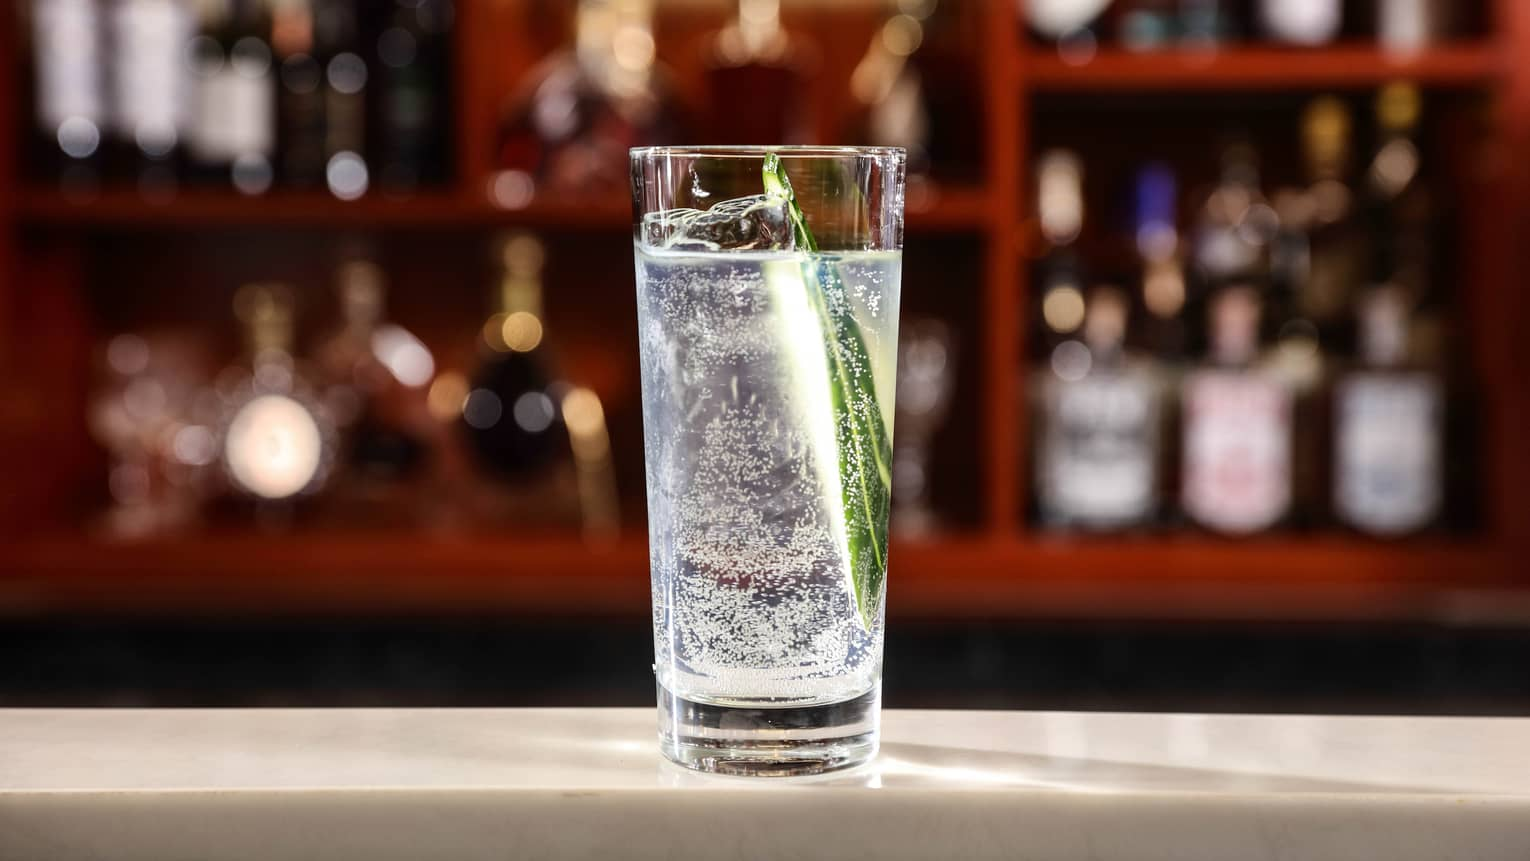 Tall glass with gin and tonic on bar